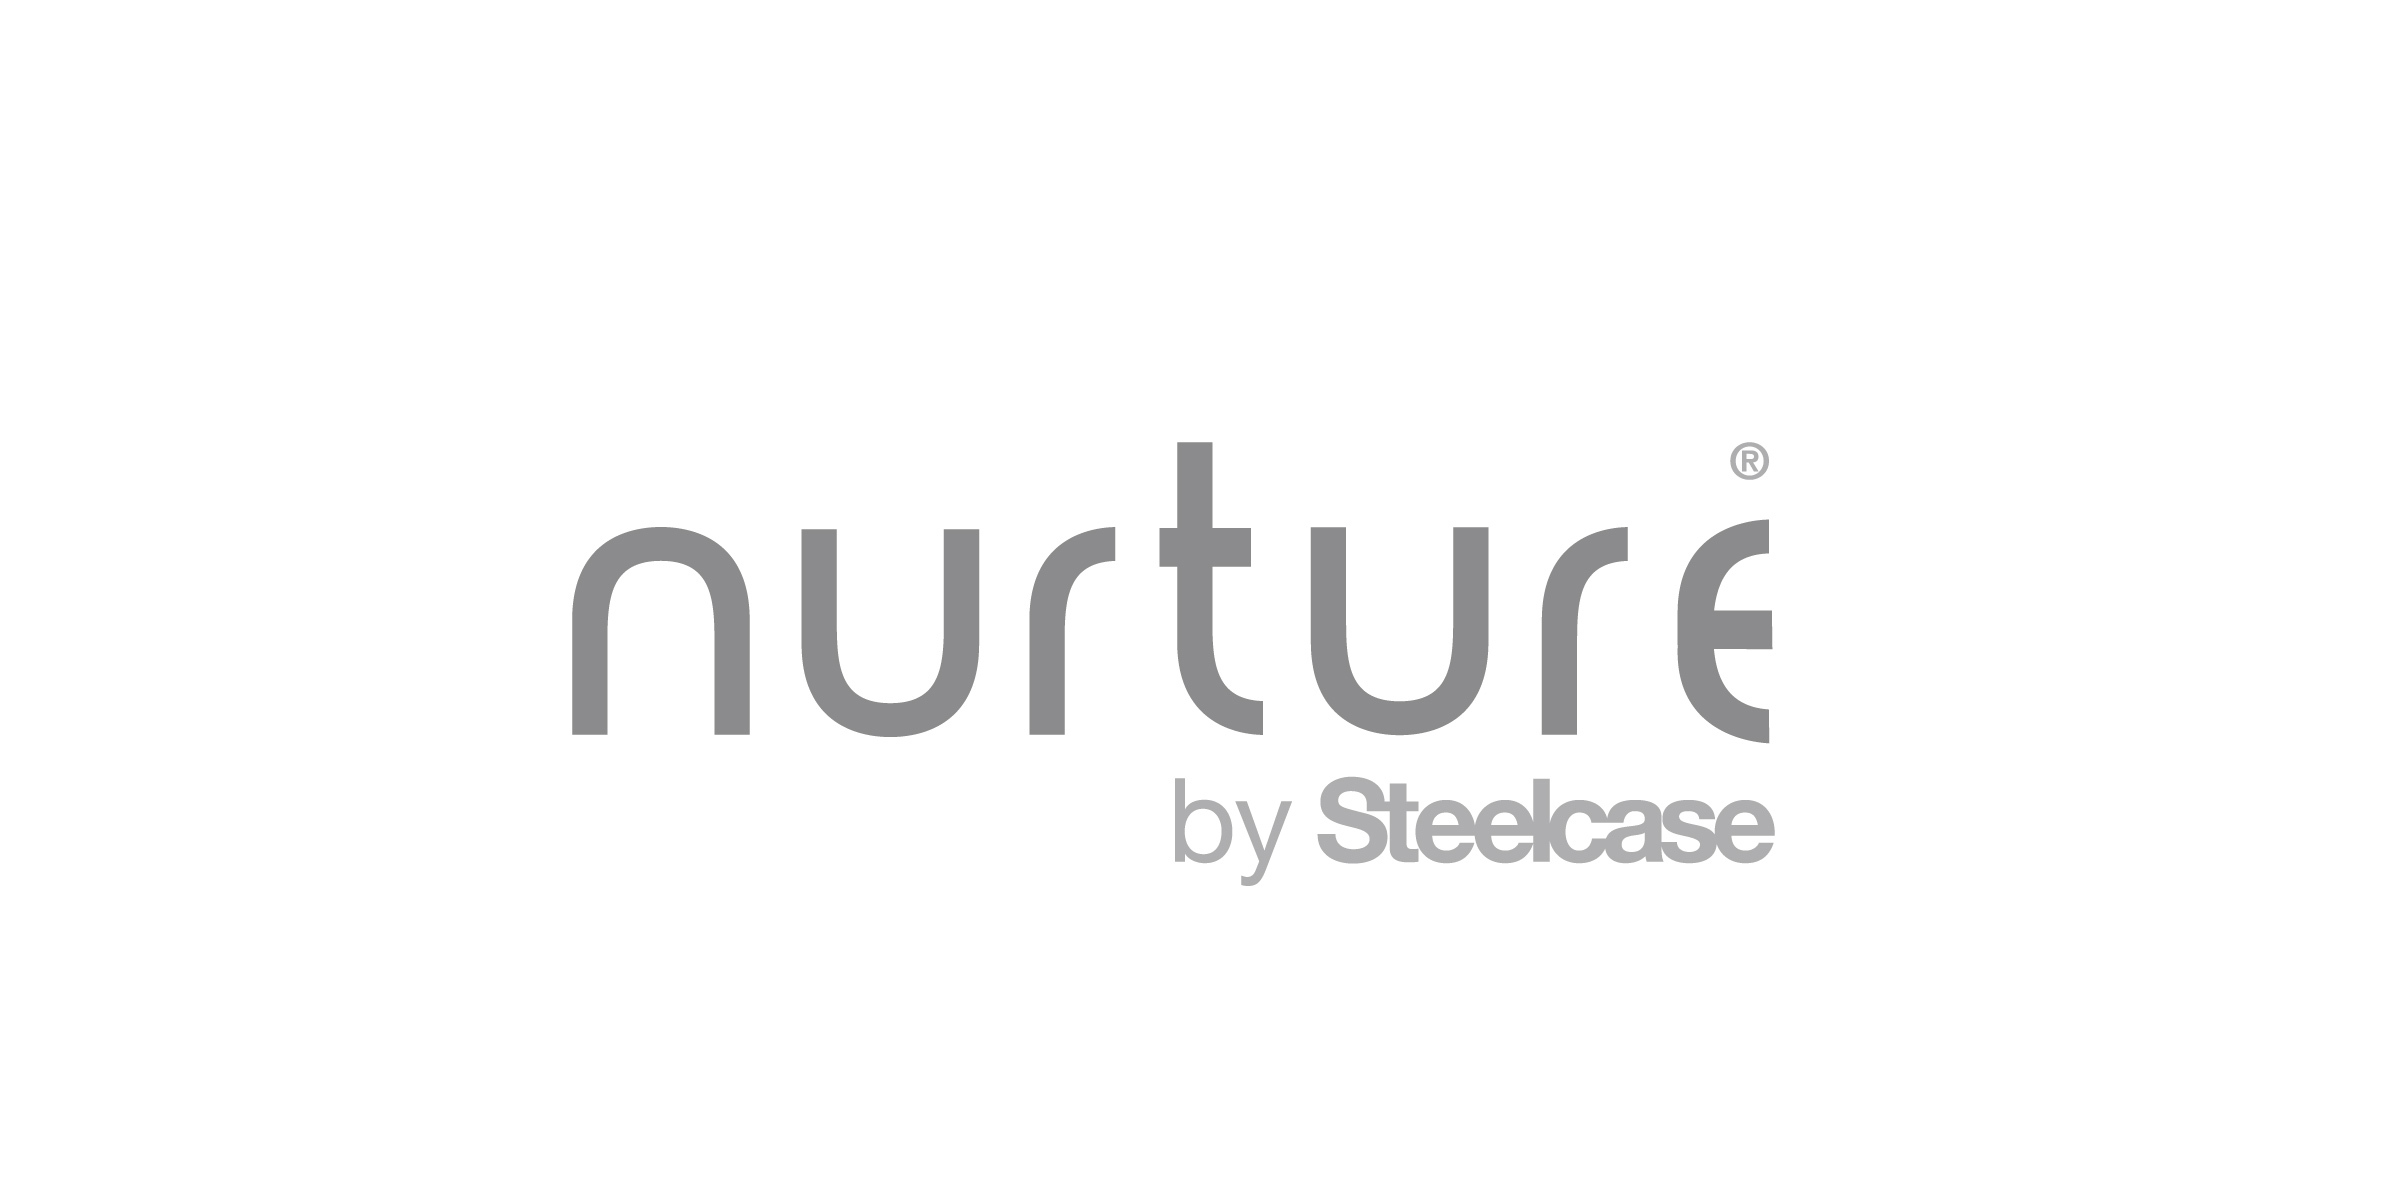 The American Academy Of Healthcare Interior Designers Inc And Nurture By Steelcase Unveil This Year S Graduate Research Fellowship Business Wire